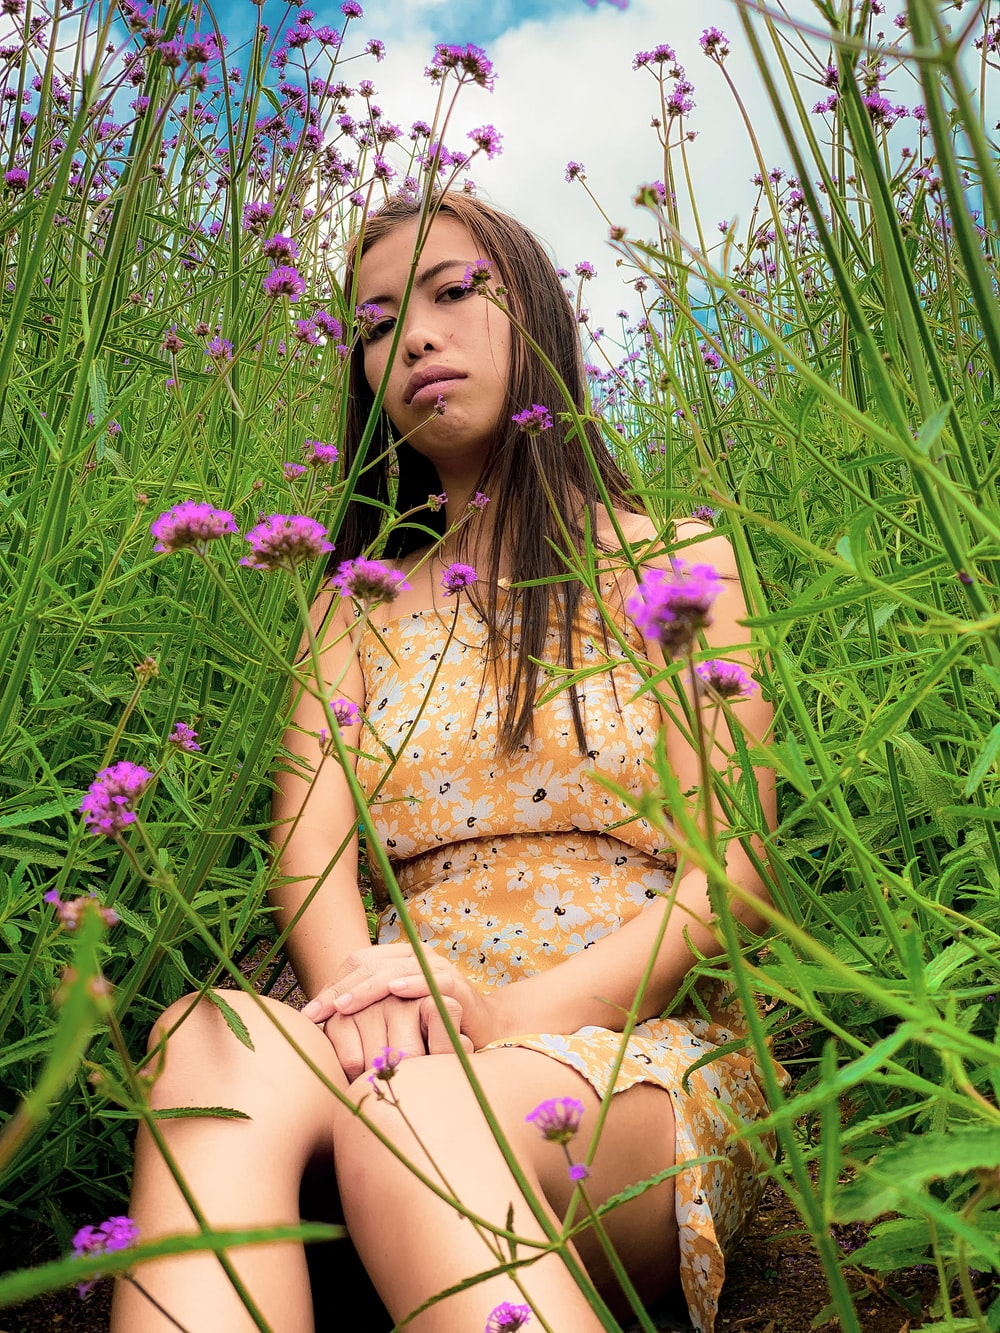 woman sitting on ground surrounded by purple-petaled flowers